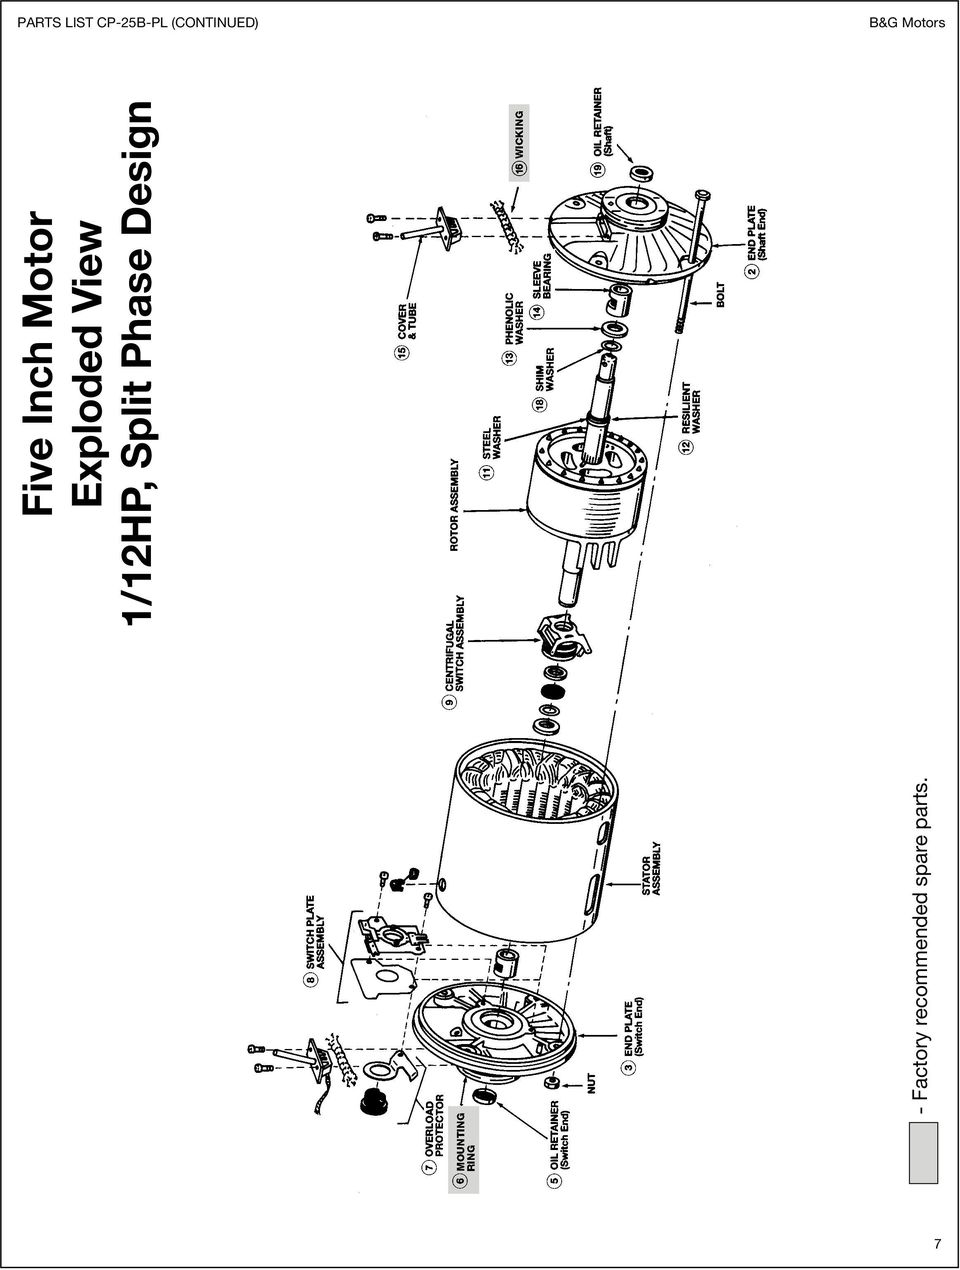 Bell Gossett Motors Wiring Diagram Electrical Diagrams Amp Replacement Parts For 1 12 Hp Through 2 Bg And 3